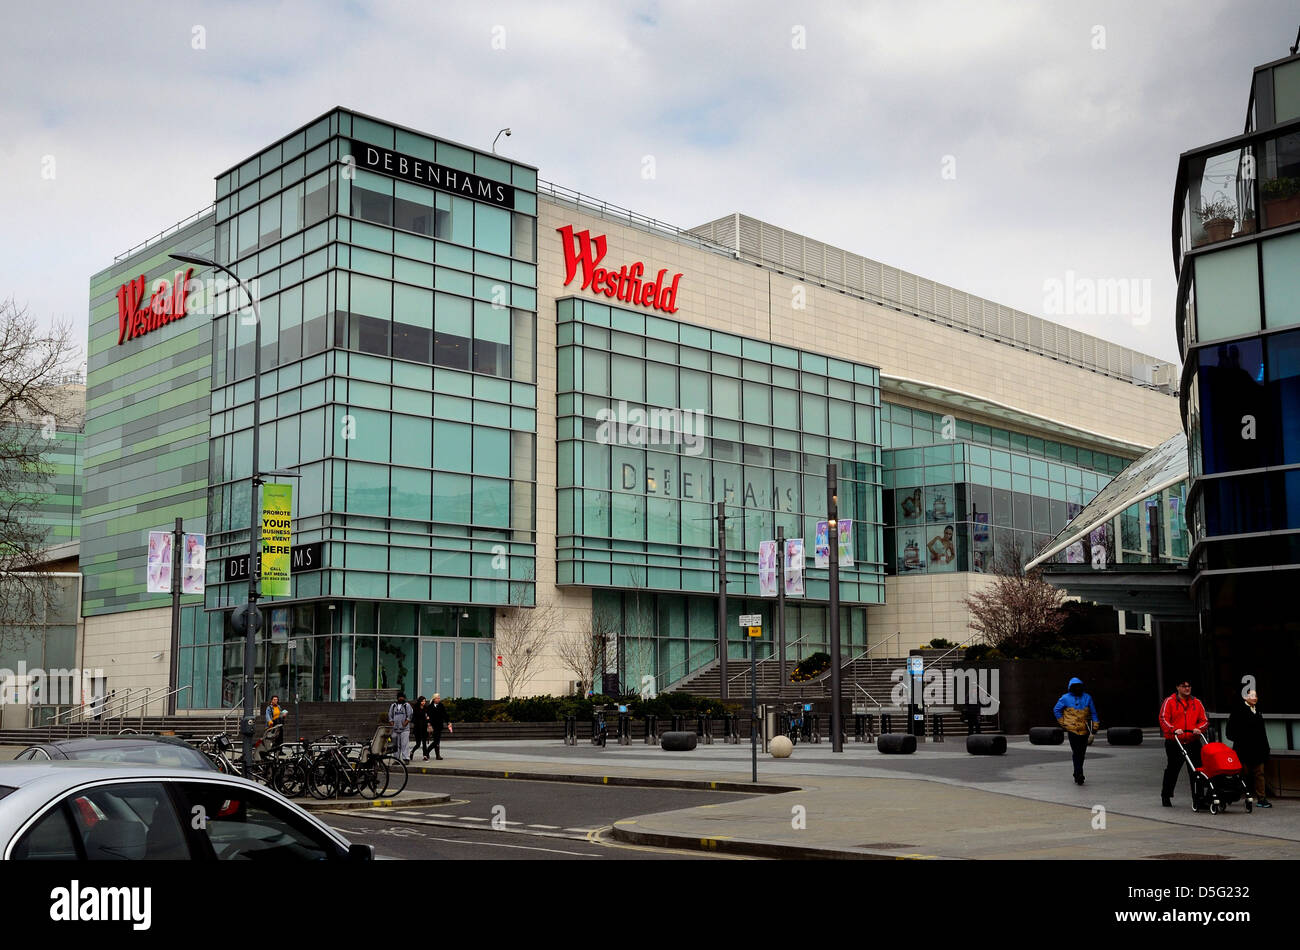 Exterior of The Westfield shopping centre ,Shepherds Bush London - Stock Image